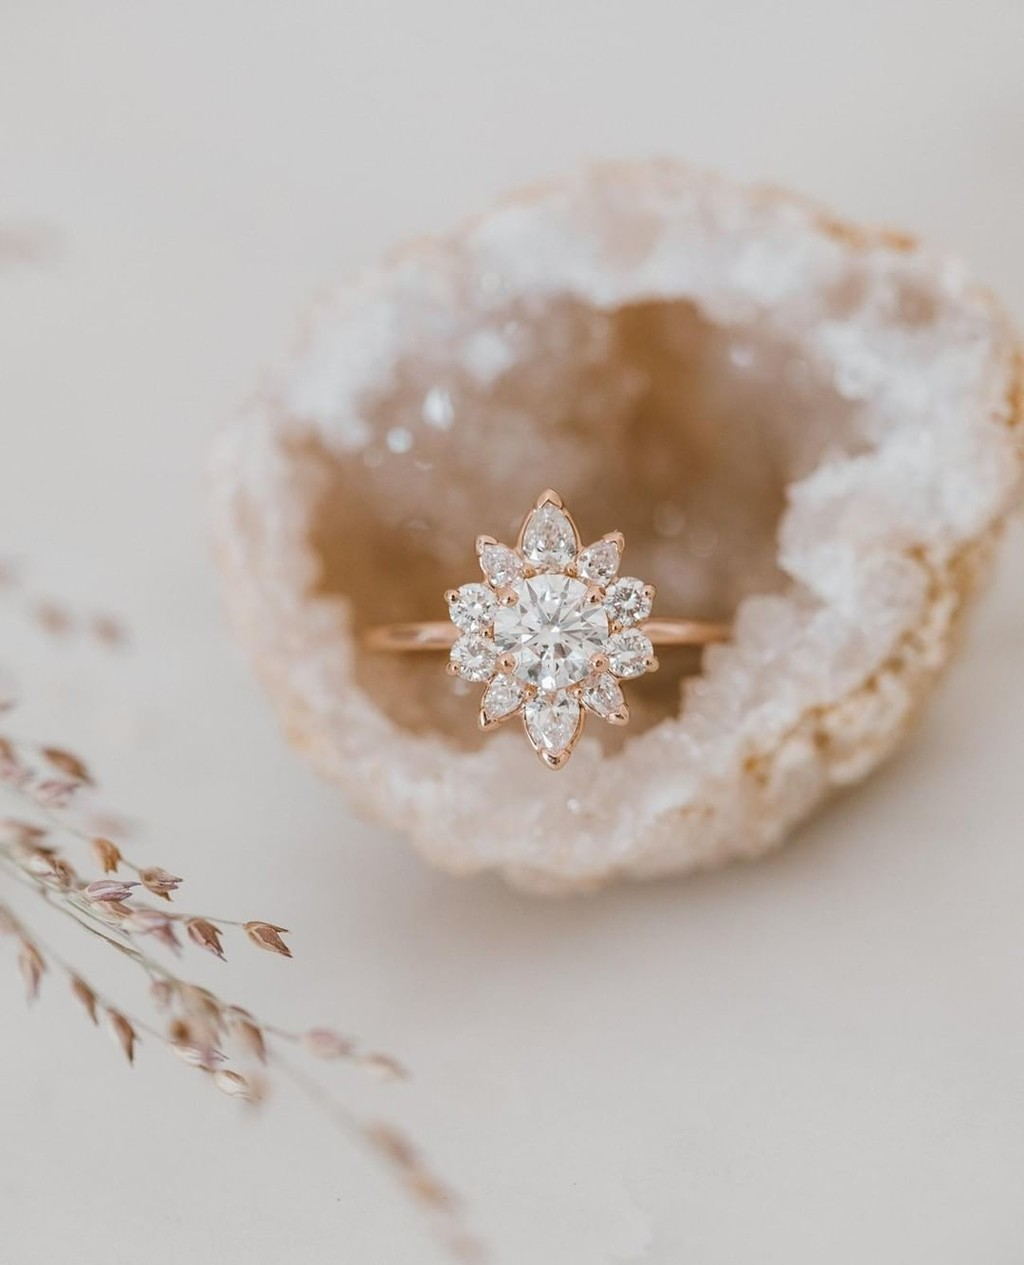 The swoon is real over our stunning Sarah O. Signature ring with a petal starburst diamond halo in 14k rose gold. Just a reminder we